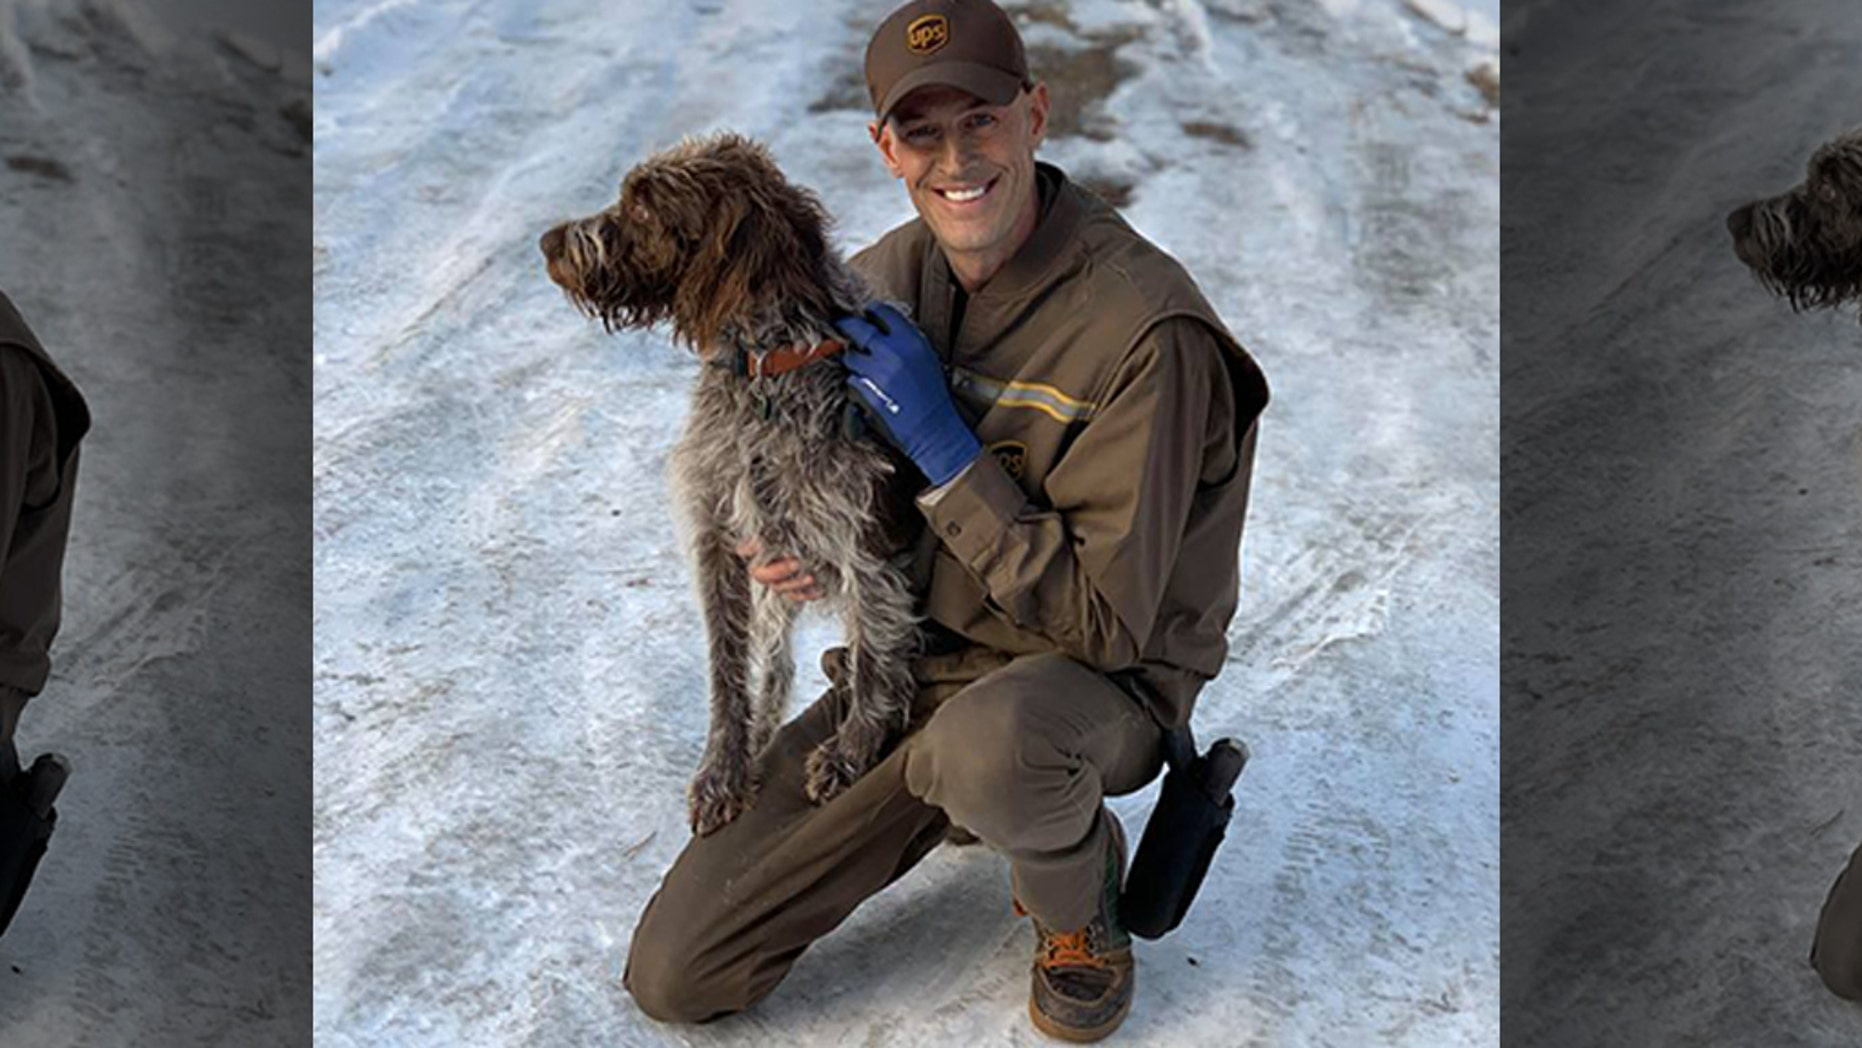 Ryan Arens was delivering packages just before Christmas when he noticed a dog stuck on an icy pond in Bozeman, Montana.